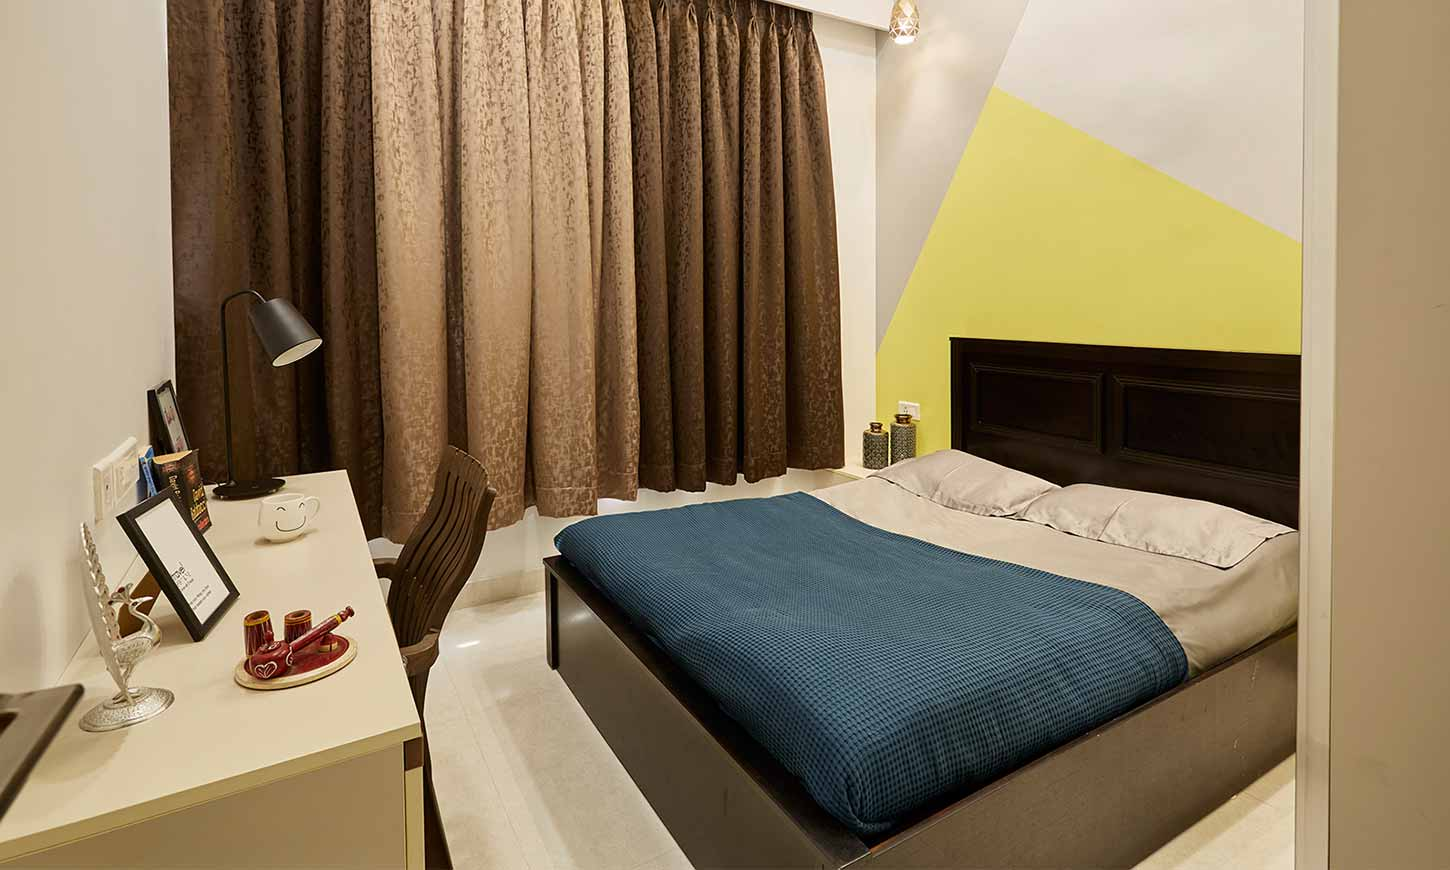 Bedroom interior design in mumbai with a working table and brown curtains